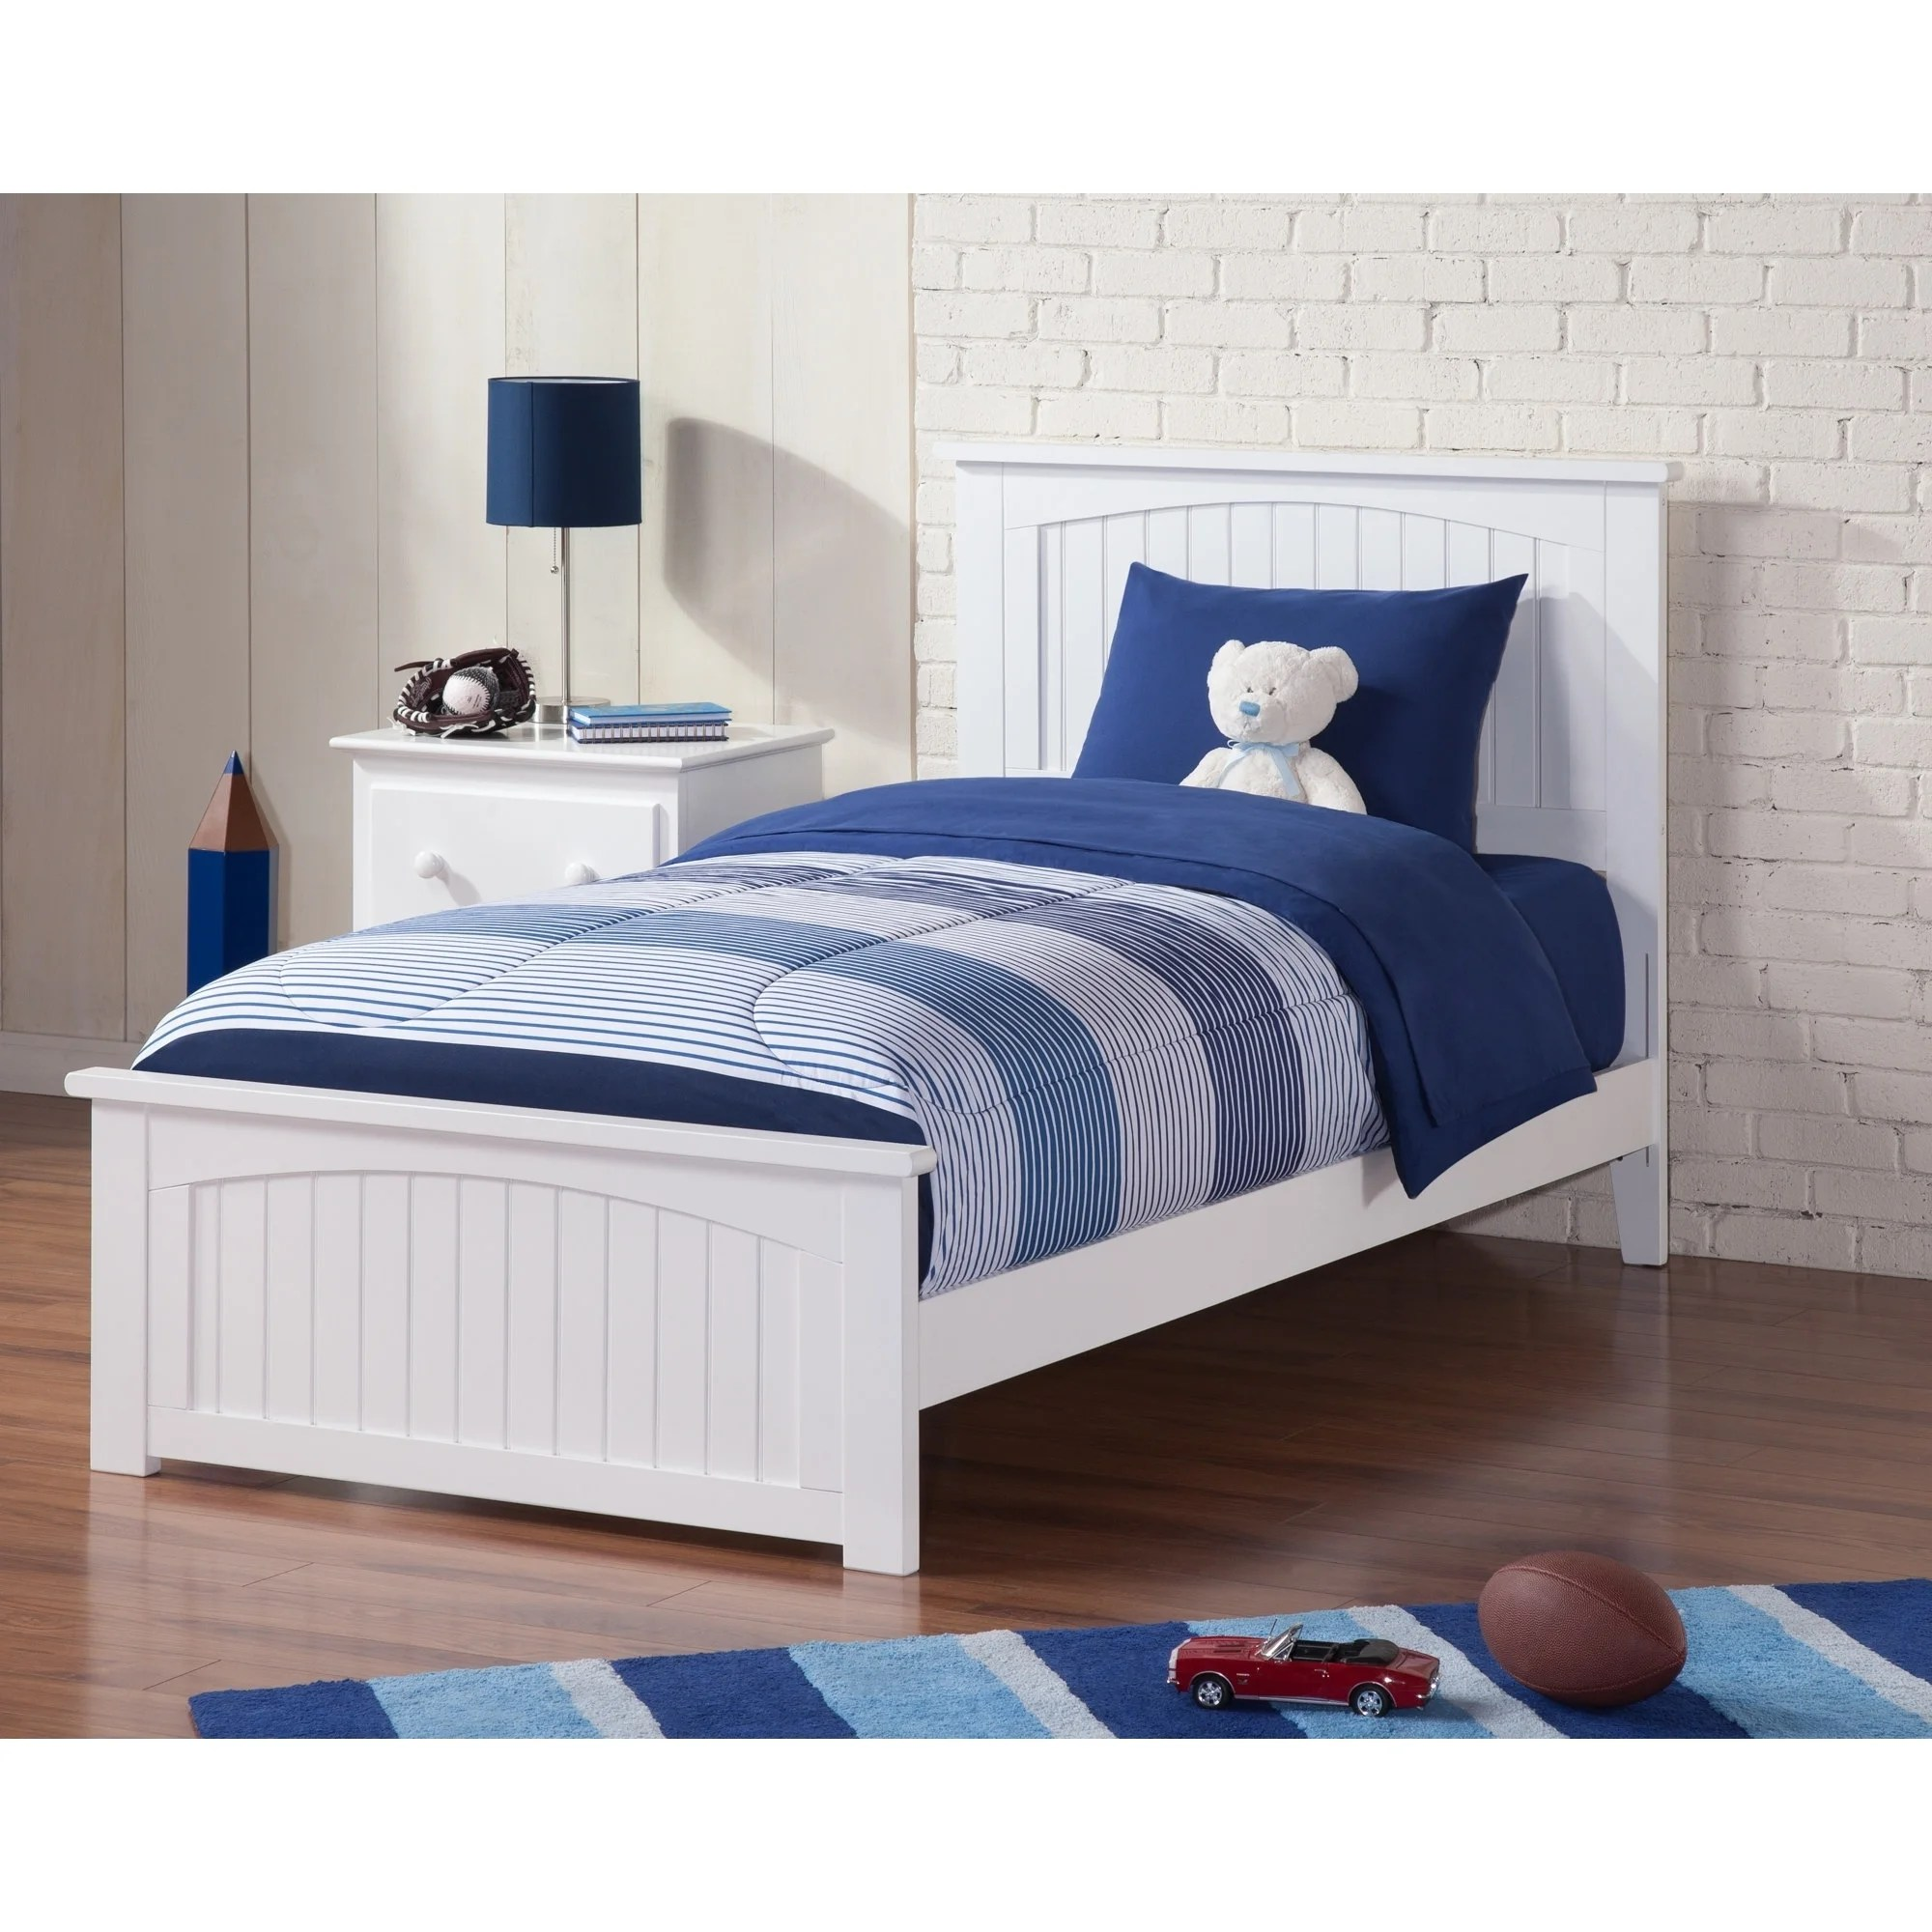 Classic Bedroom Escape Nantucket Twin Xl Bed With Matching Foot Board In White